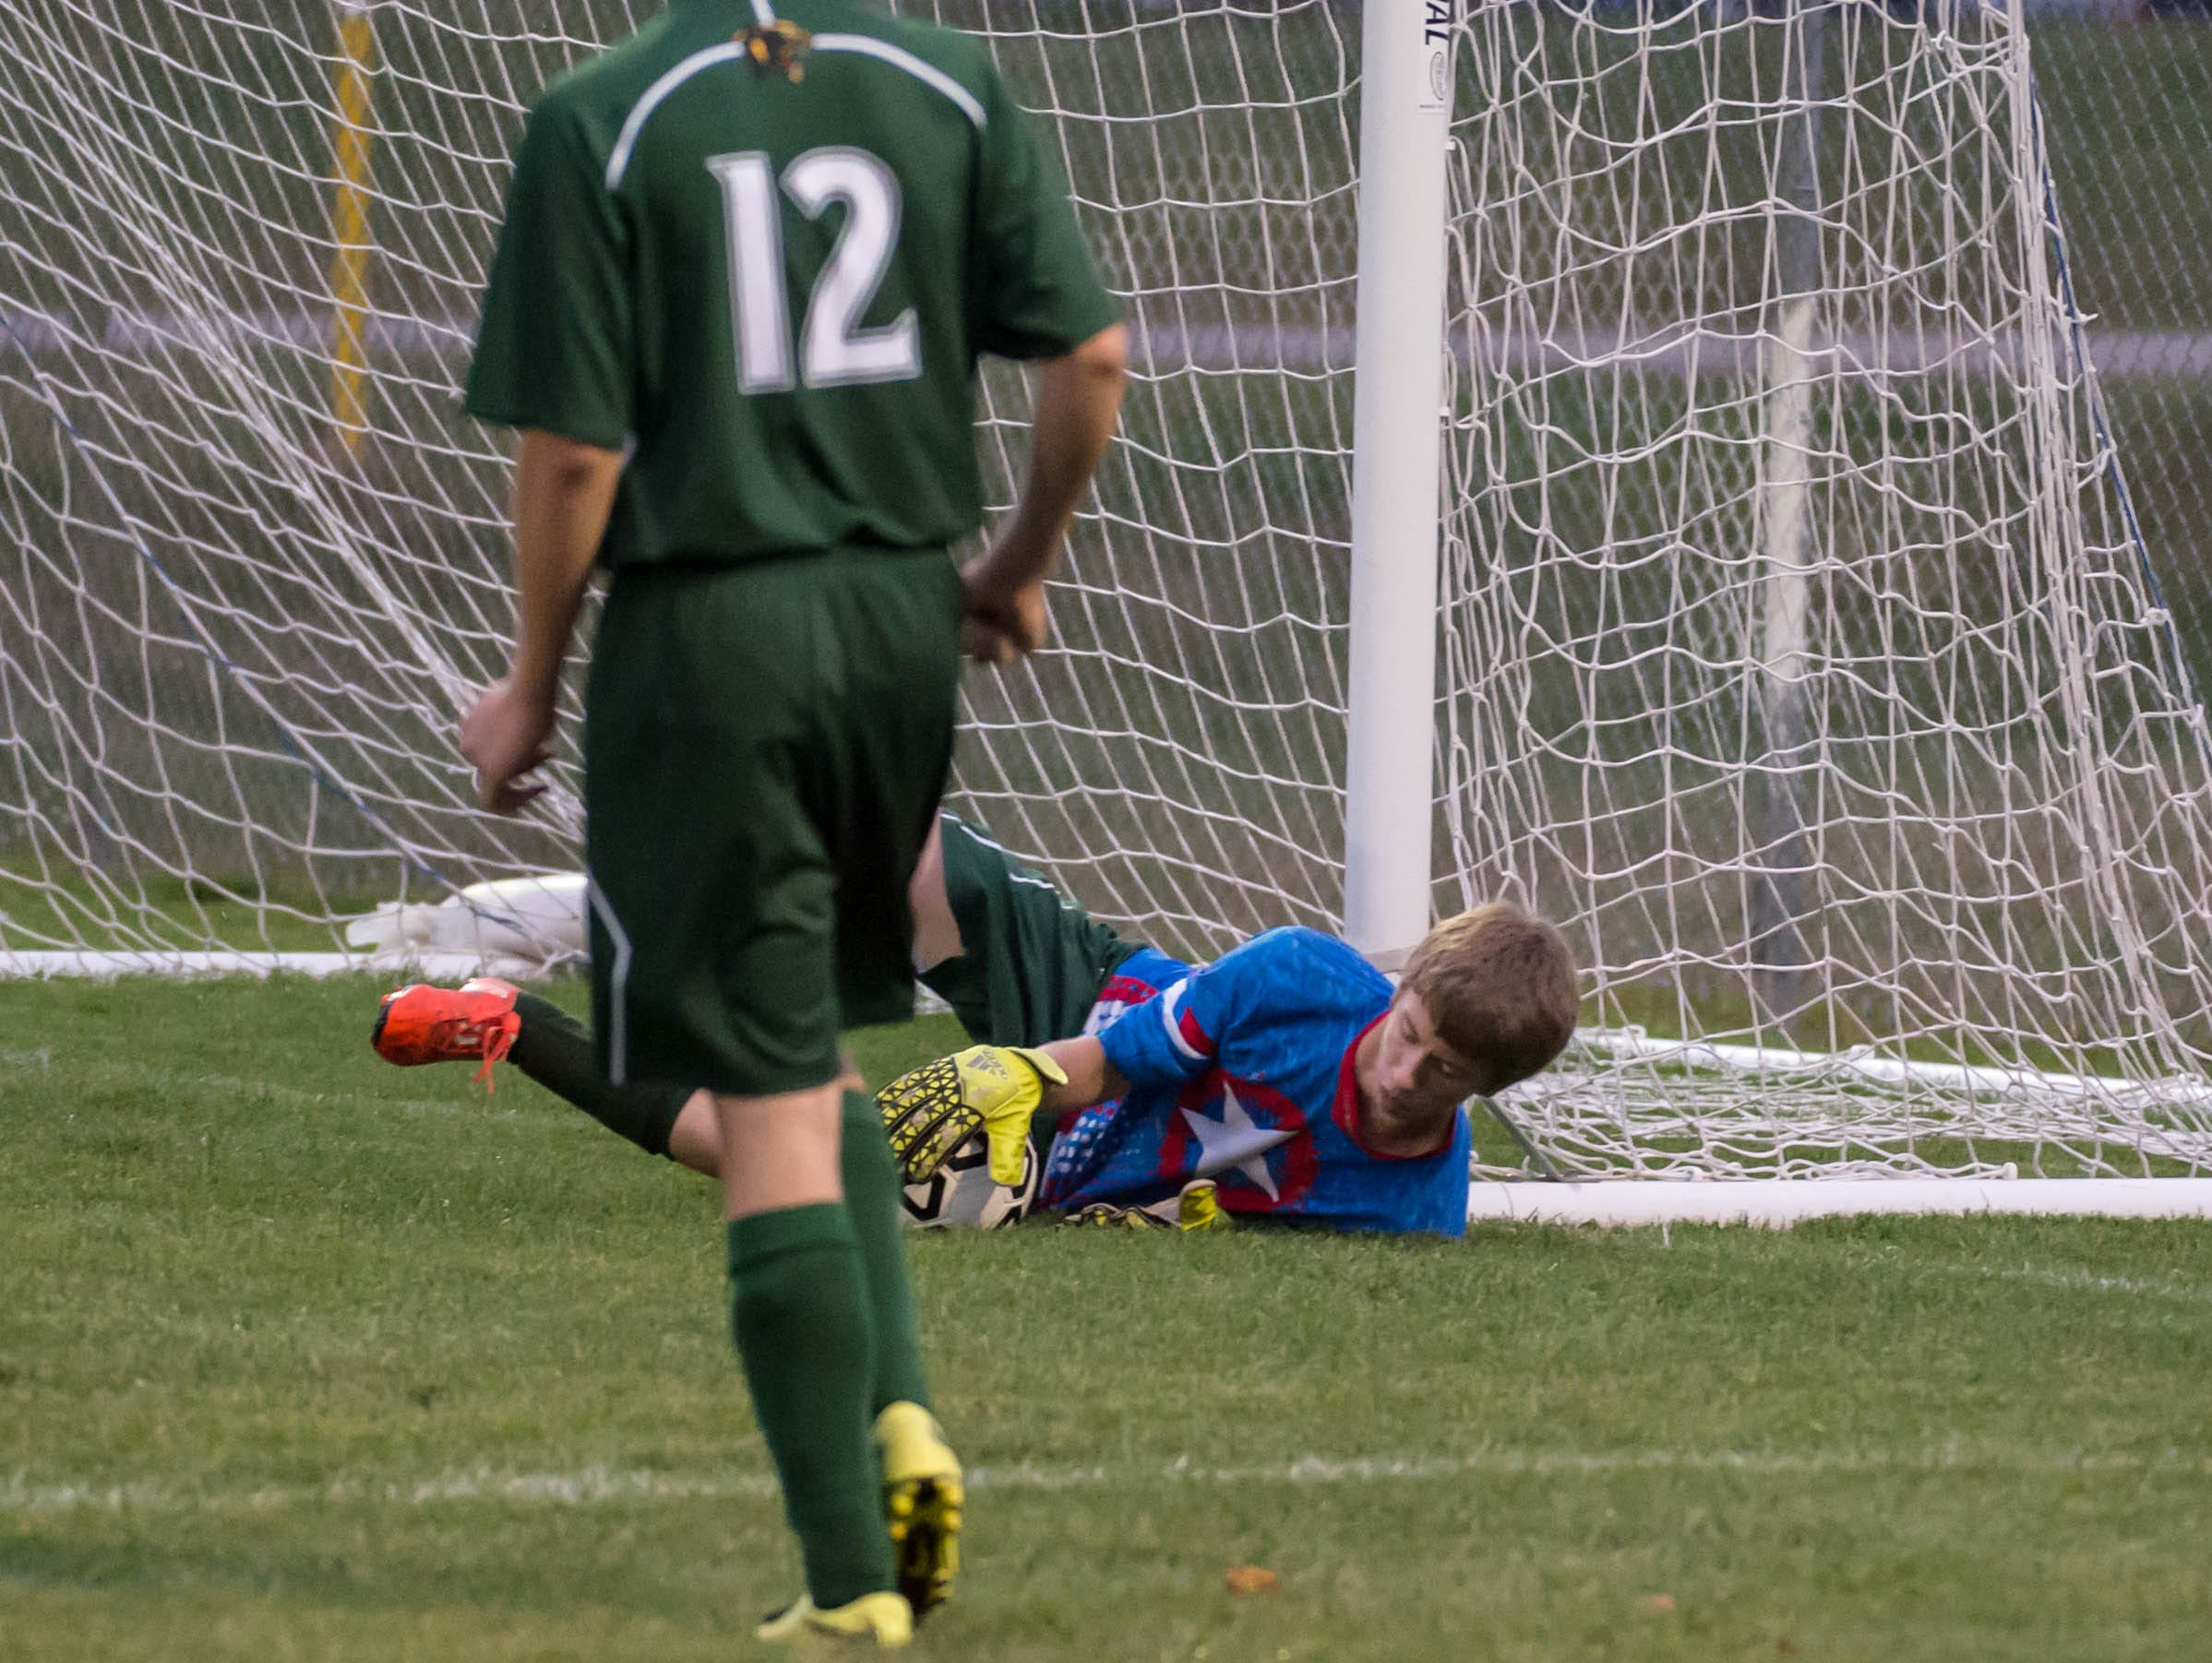 Pennfield's goalkeeper Keith Browand makes a stop during district action Tuesday evening.